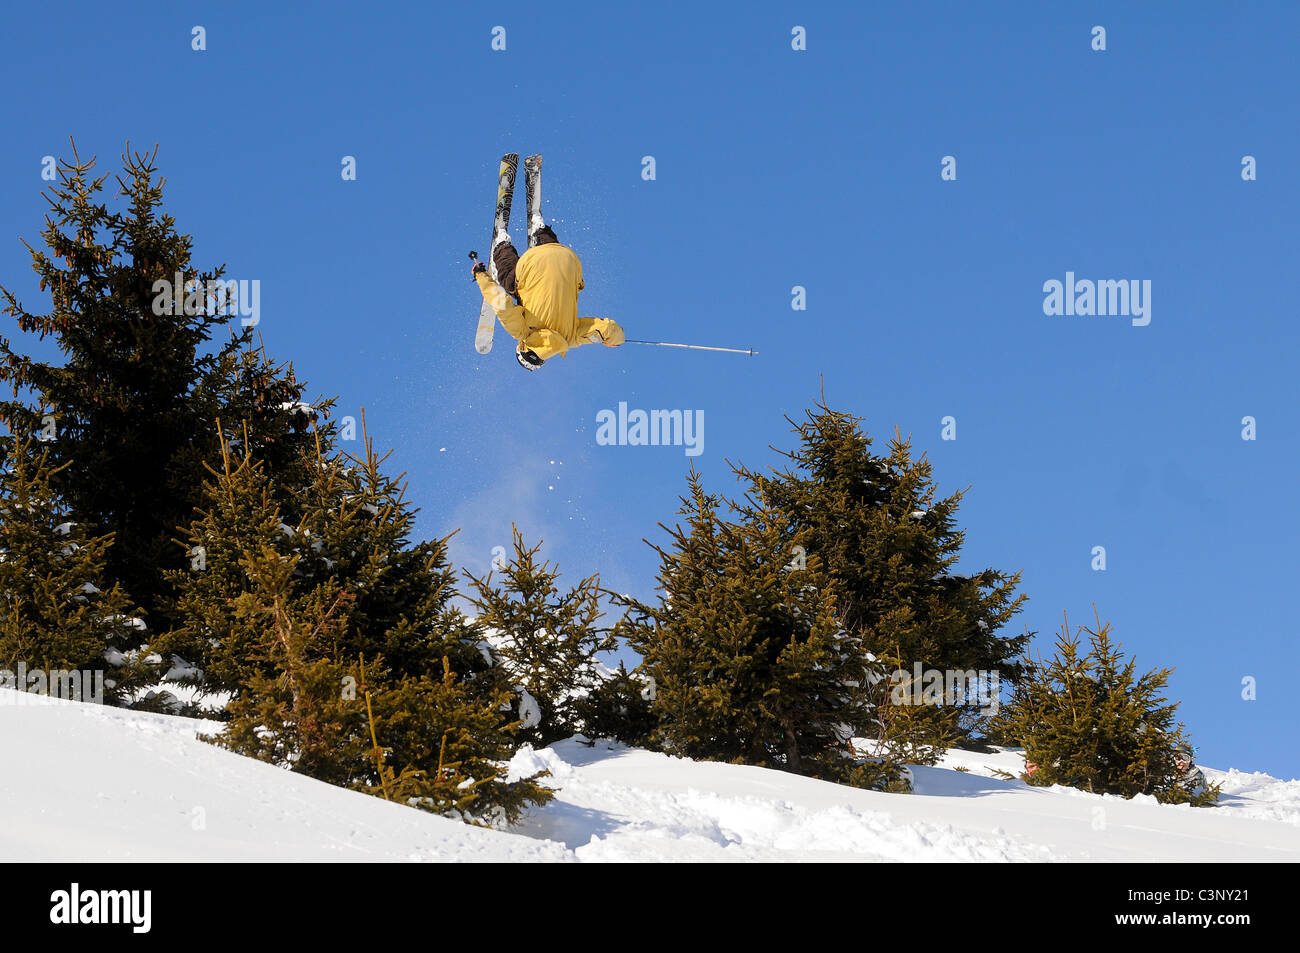 A skier performs a front flip off a huge jump in the ski resort of Courchevel in the French alps. - Stock Image